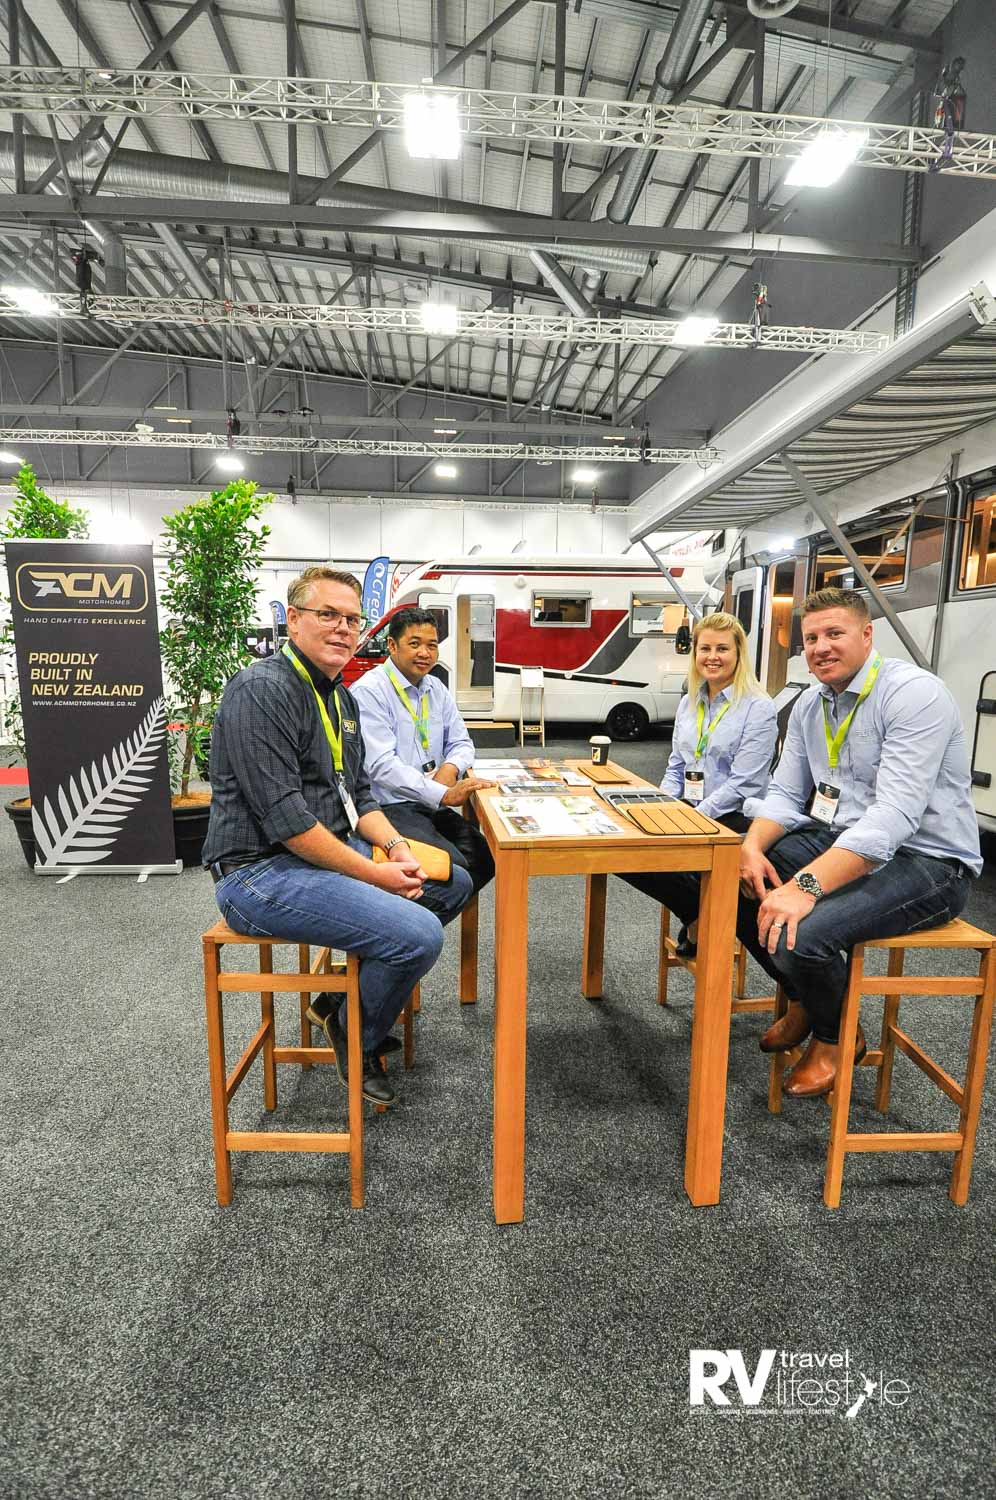 This the the nucleus of the ACM team, local manufacturing innovators in the RV manufacturing industry. From the left Designer Grant Wakerley, Factory Forman Cris behind, to the right ACM owners Chris and Jasmine Cunard